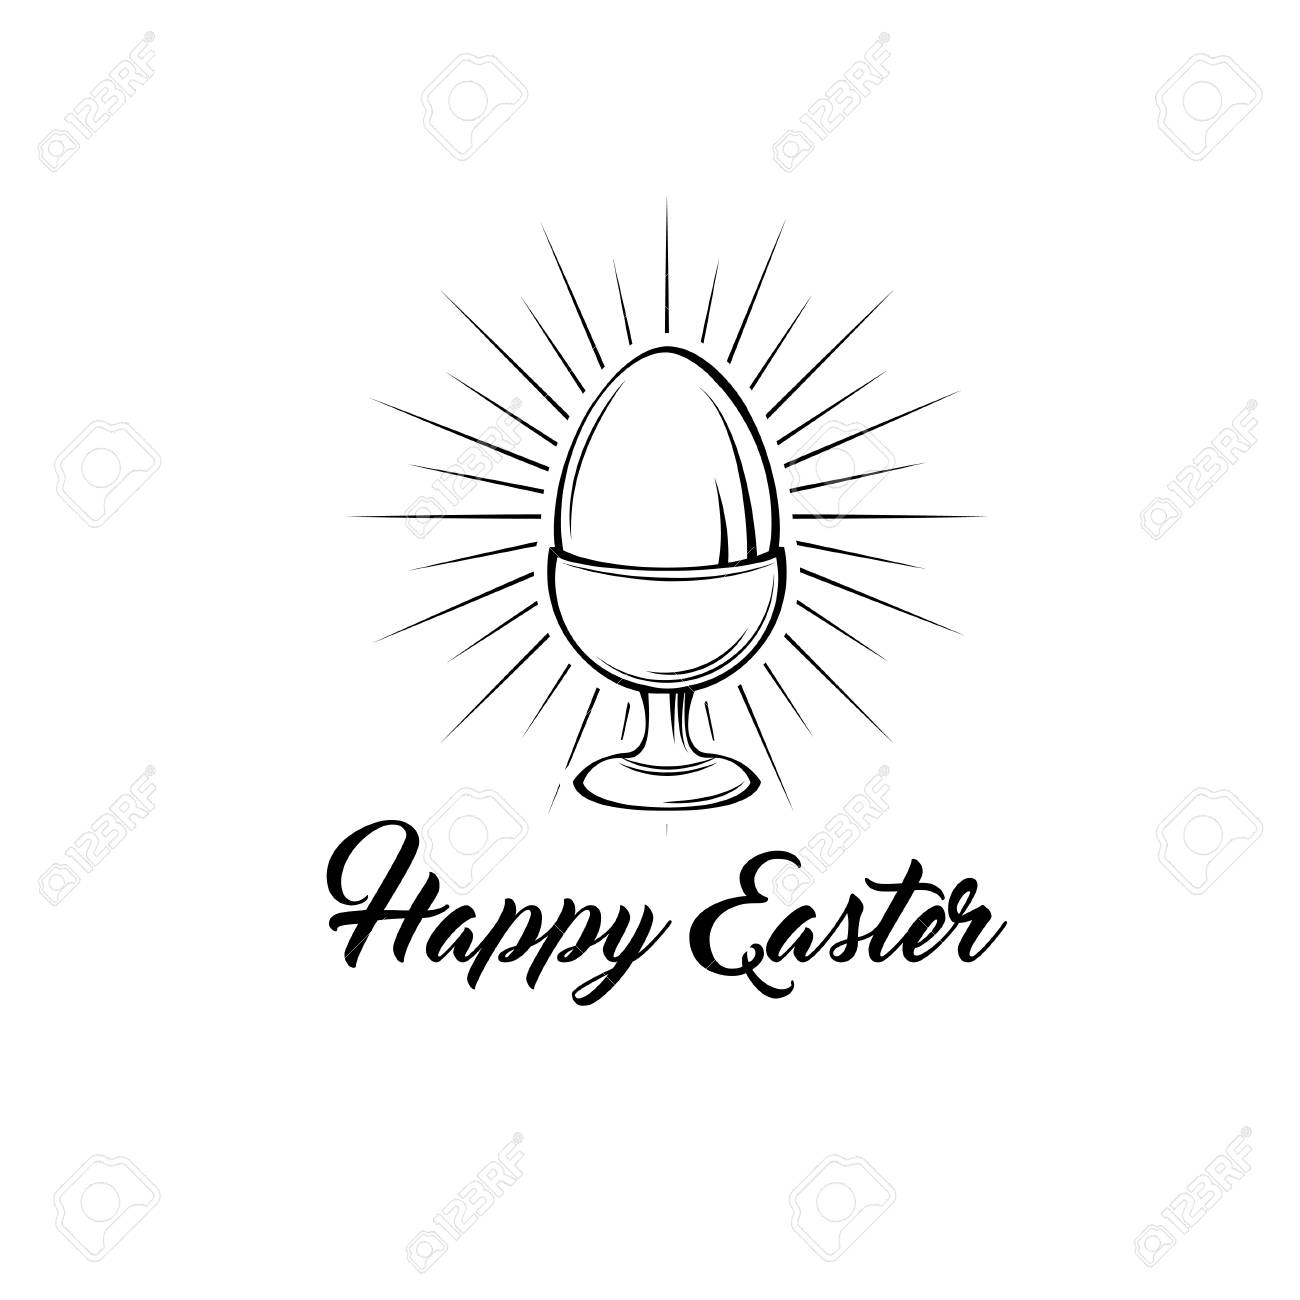 Happy easter day greeting card with egg holder. Egg-cup in beams. Vector illustration. Happy Easter text. - 97217091